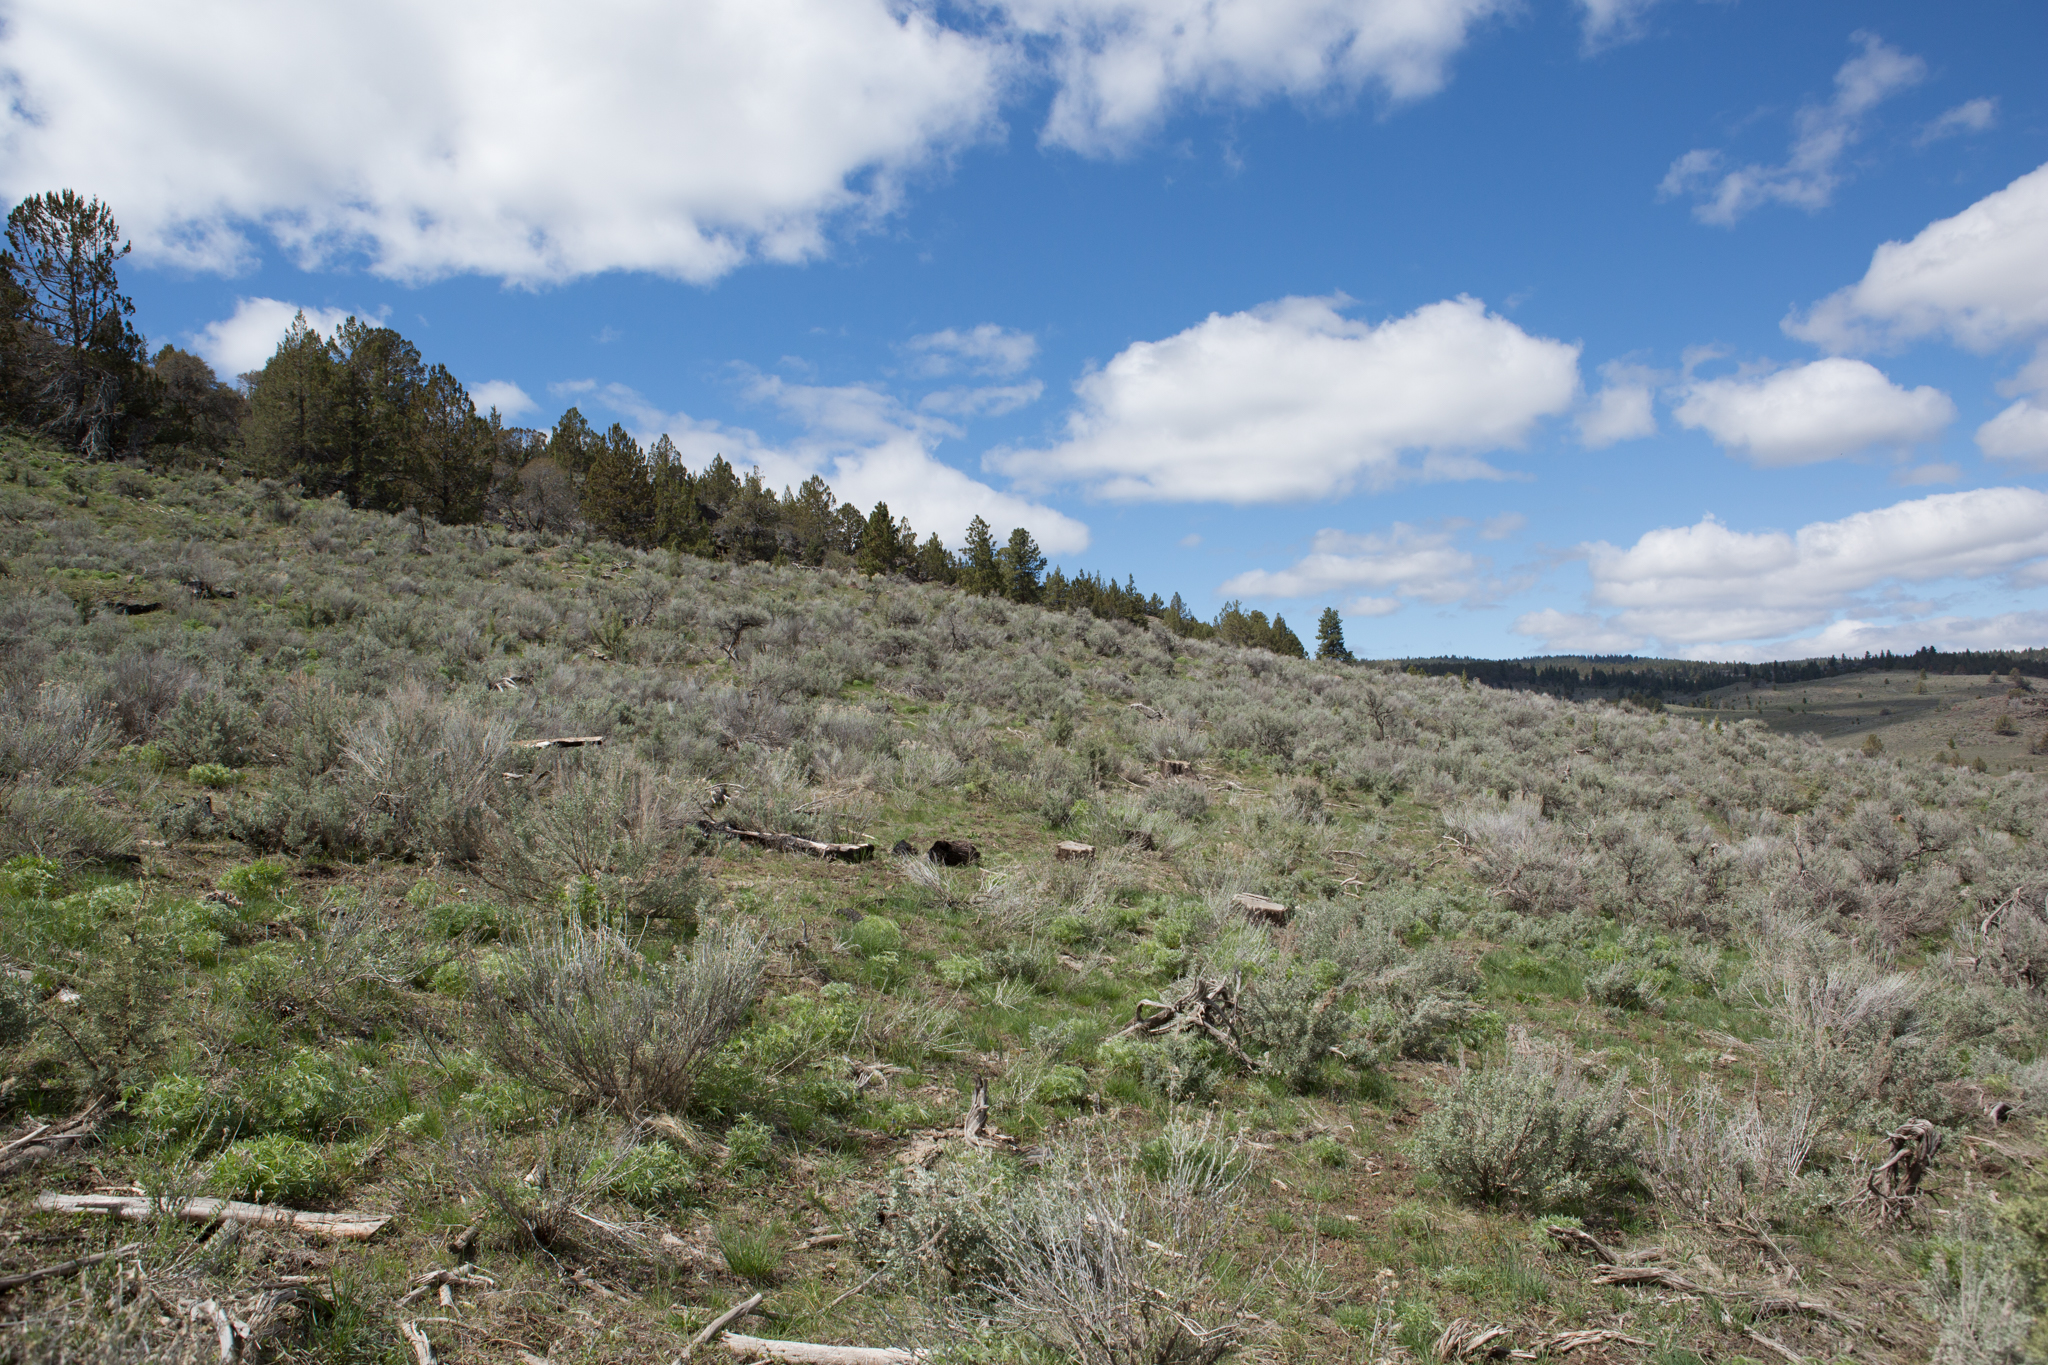 This tract on Jeff Hussey's ranch now boasts an open expanse of sagebrush and grasses having been recently cleared of junipers.